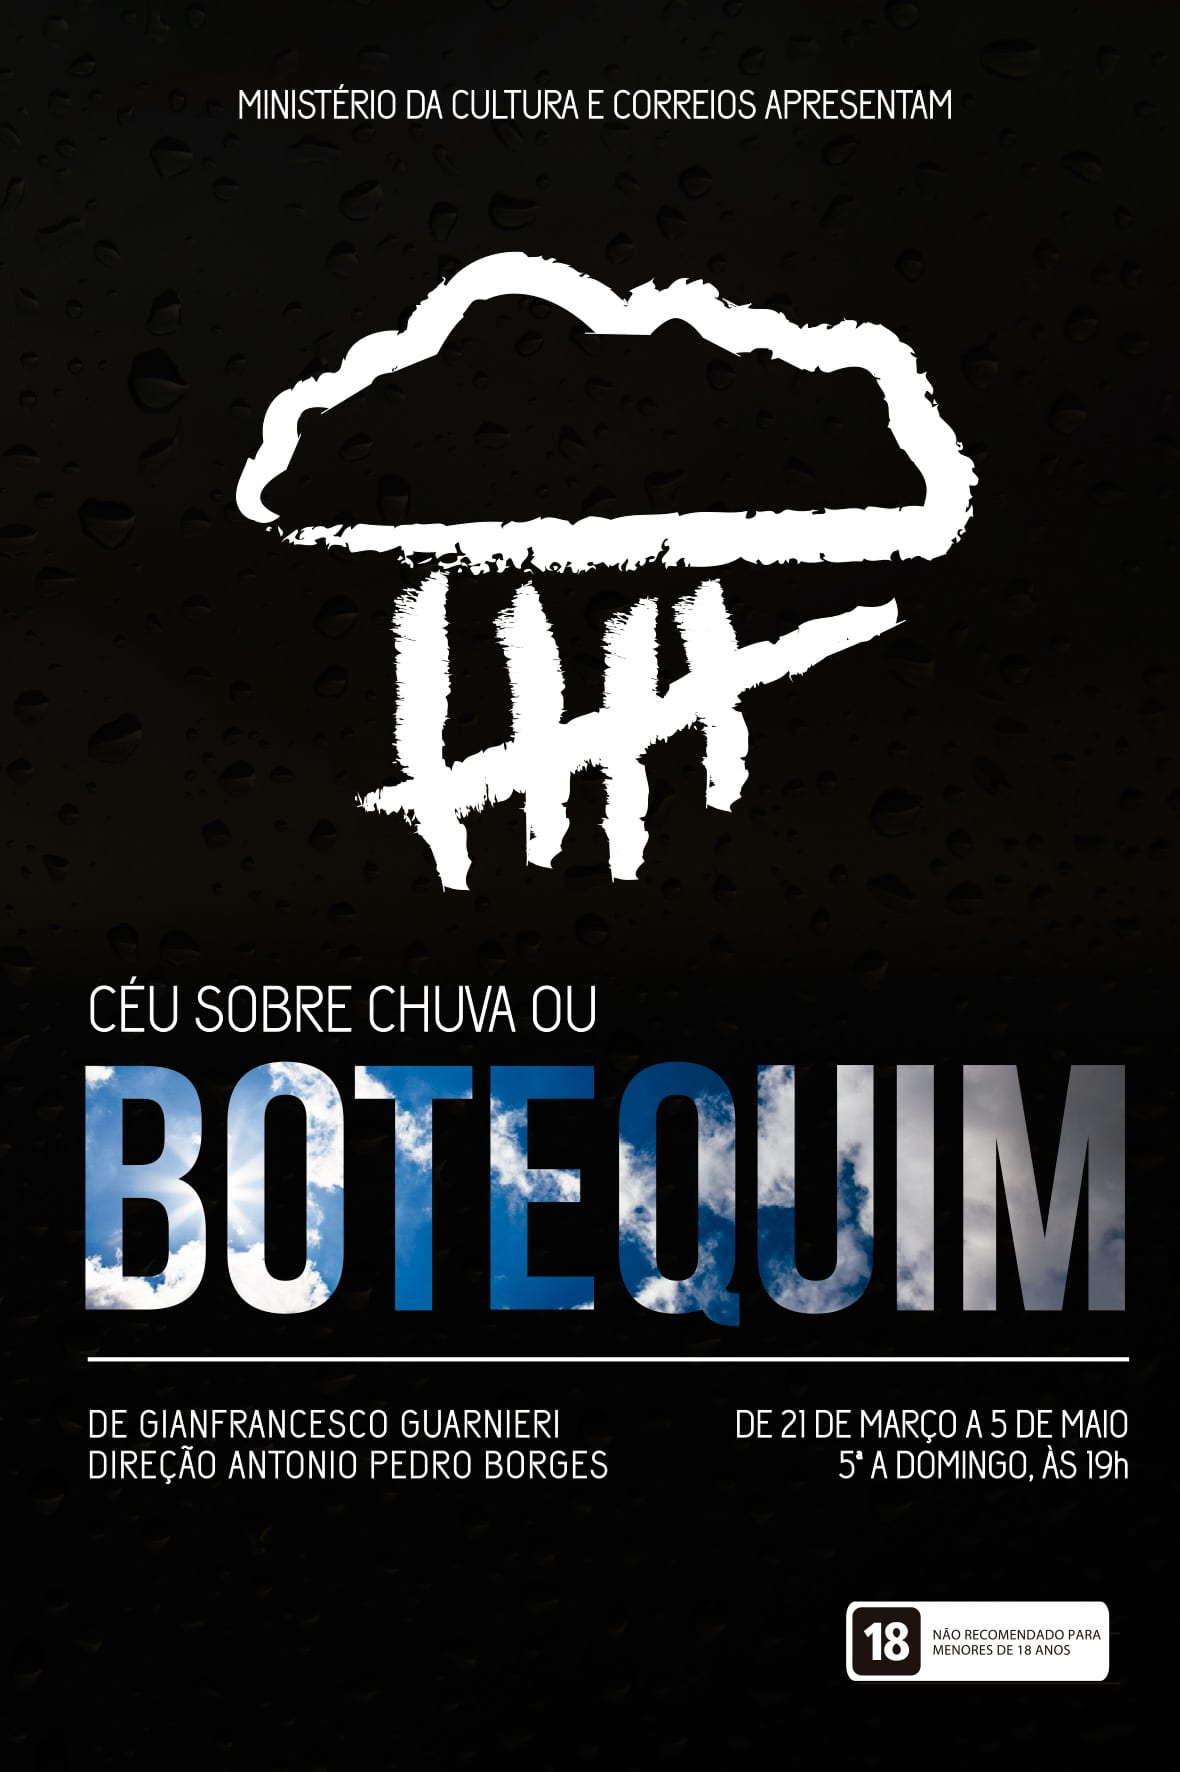 Botequim (The Tavern) - Theater Play